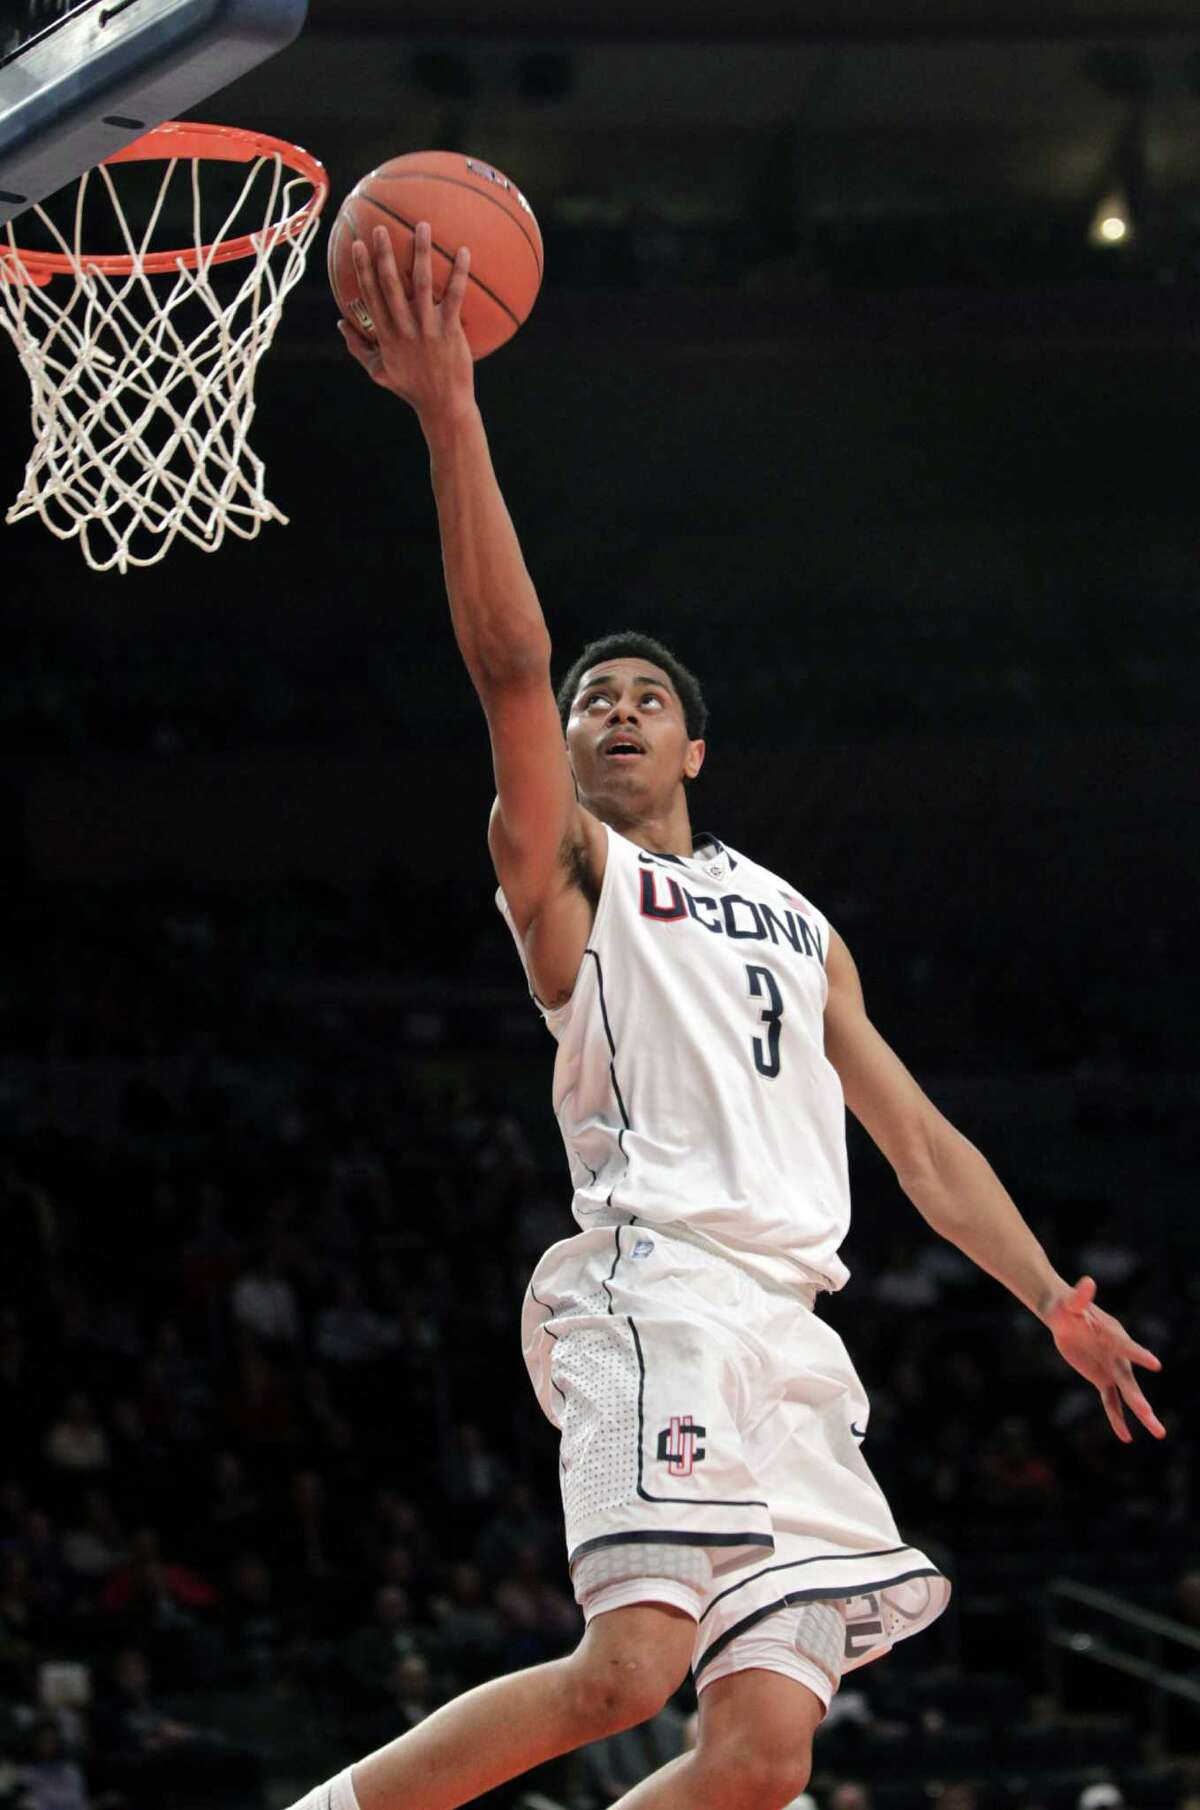 Connecticut's Jeremy Lamb takes the ball to the hoop during the first round of the Big East NCAA college basketball conference tournament against the DePaul in New York, Tuesday, March 6, 2012. (AP Photo/Seth Wenig)